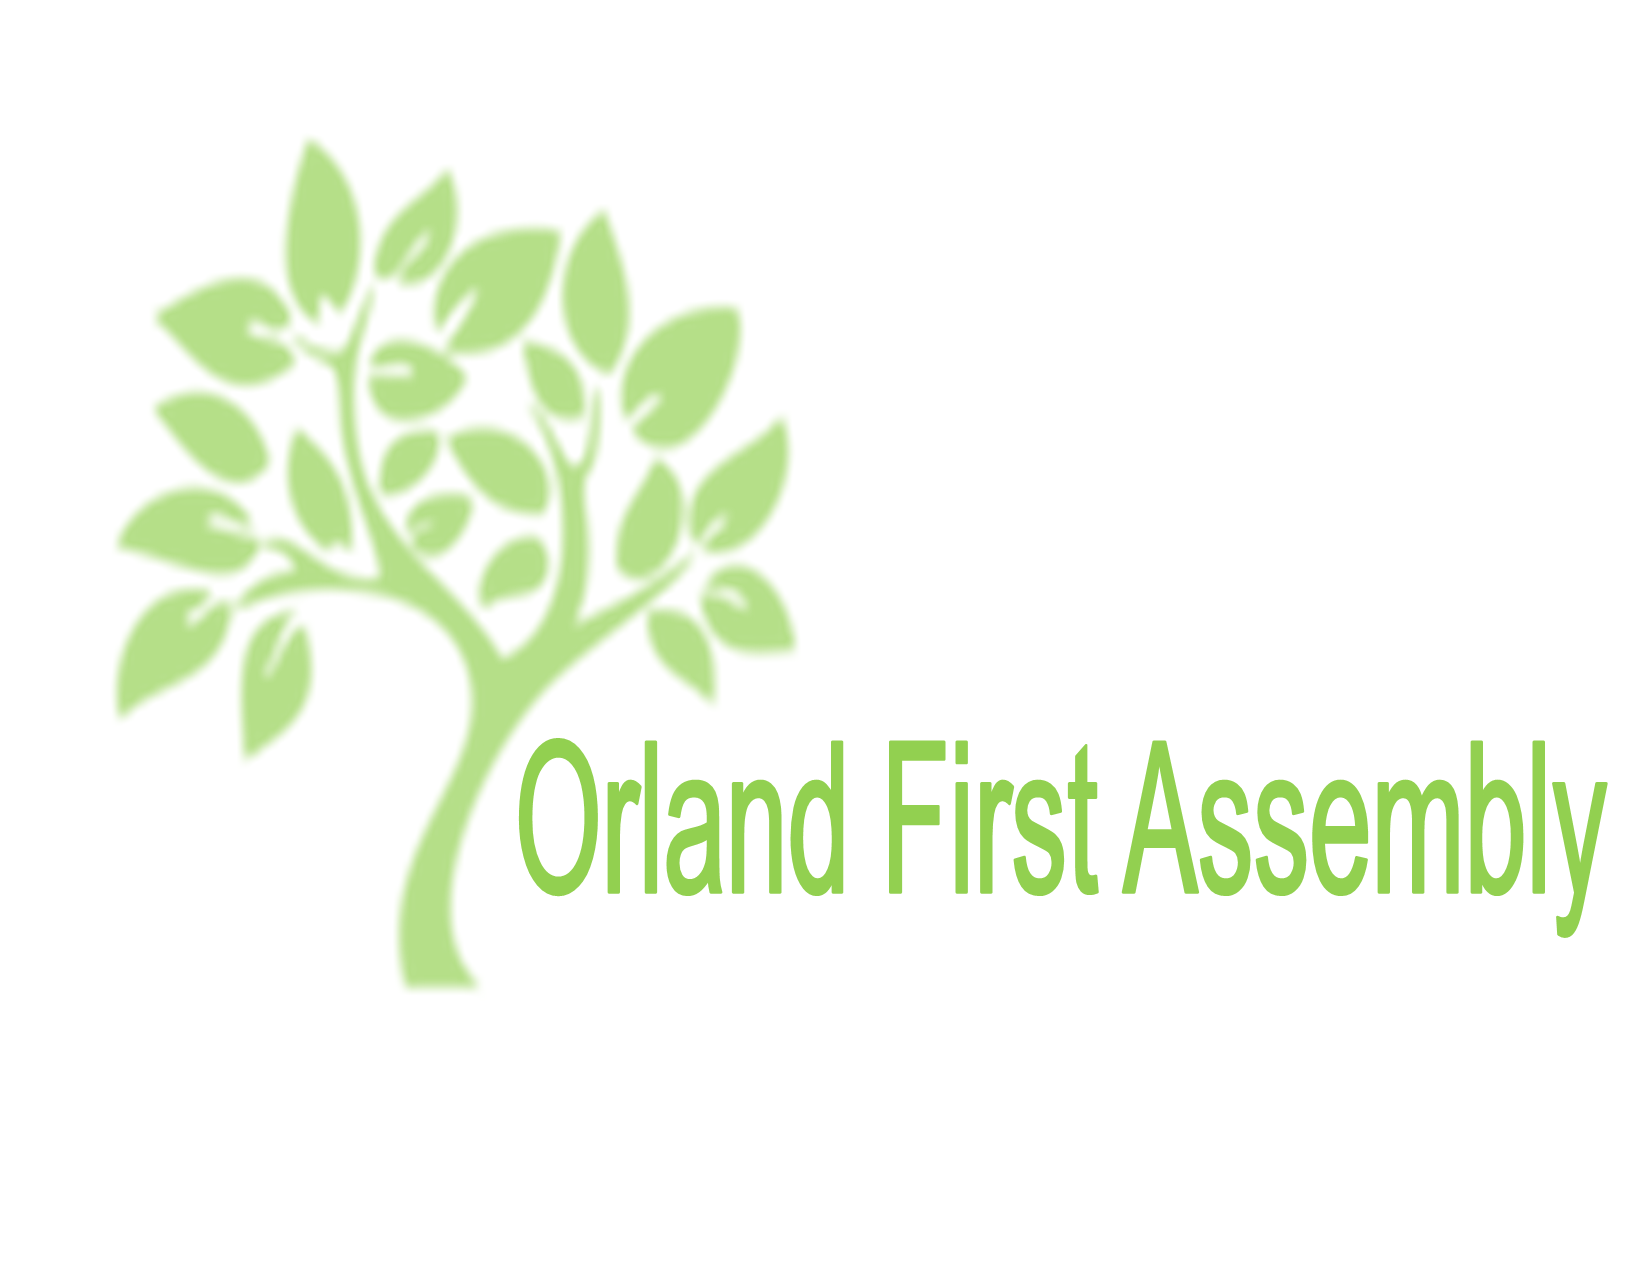 ORLAND FIRST ASSEMBLY